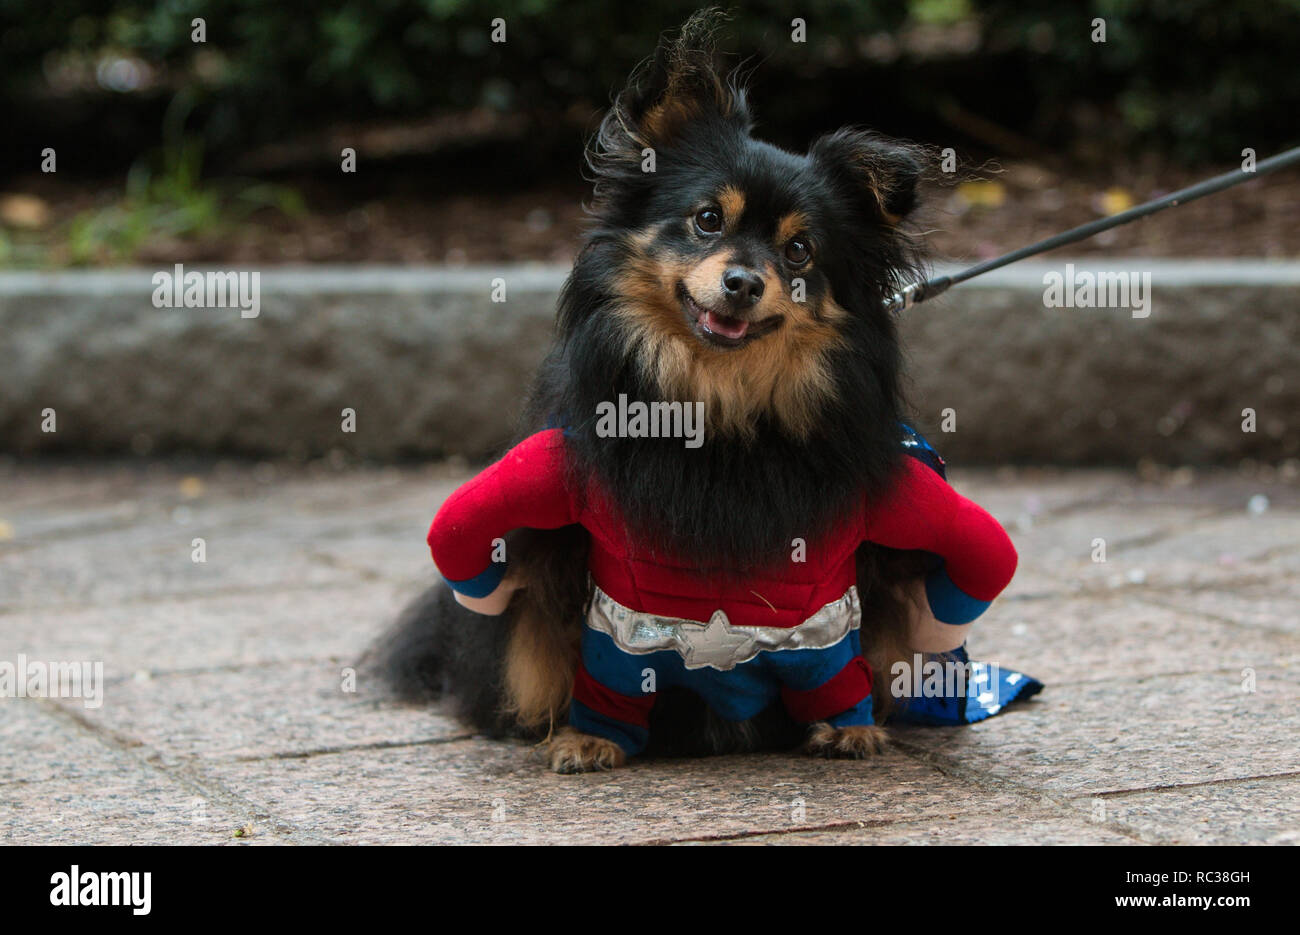 A cute dog wearing a super hero costume has a curious expression at Doggy Con, a dog costume contest on August 18, 2018 in Atlanta, GA. - Stock Image